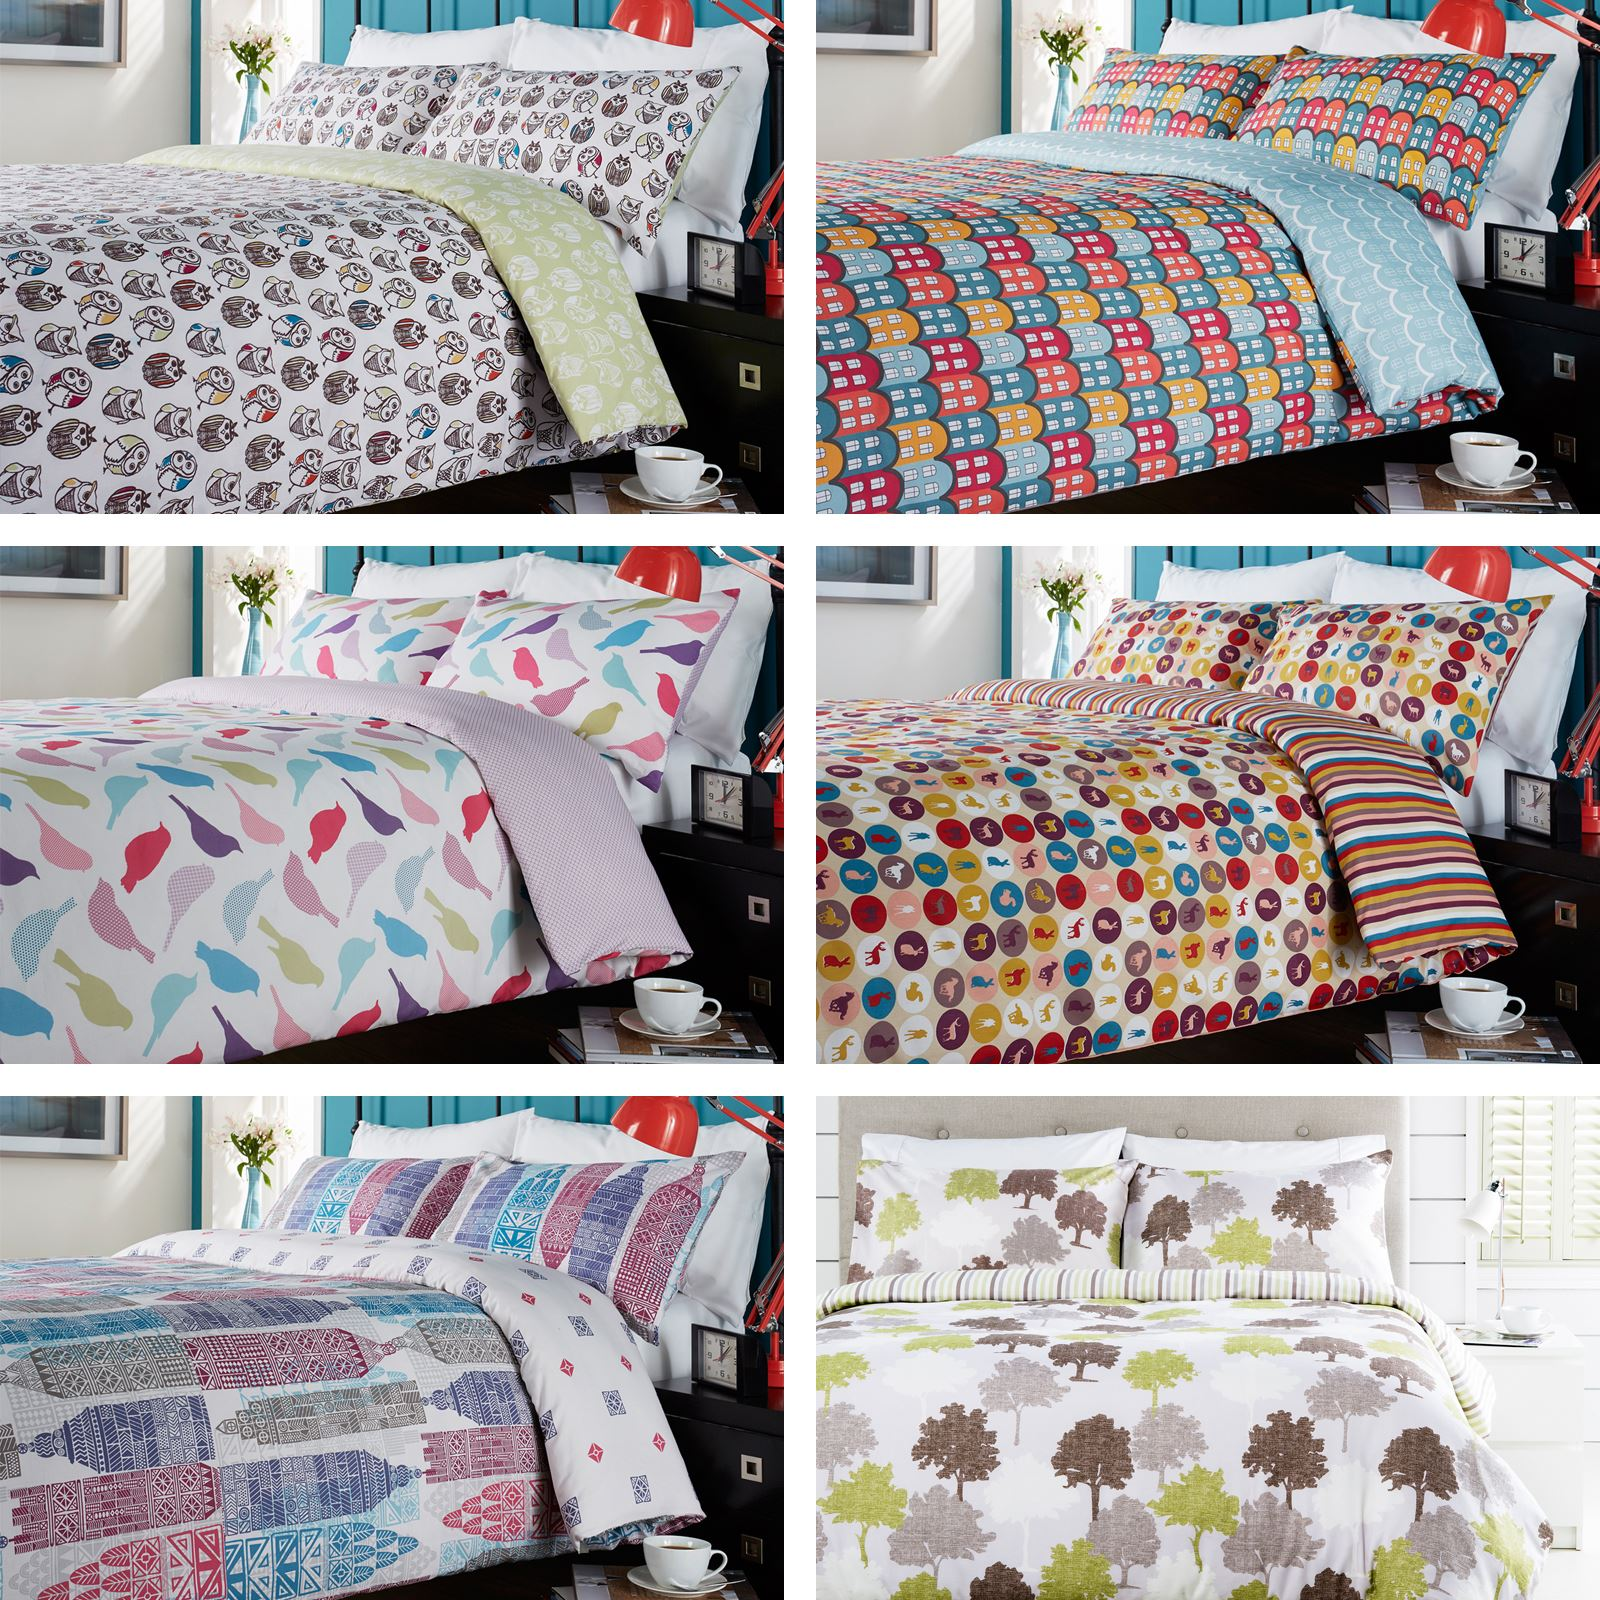 Hummingbird Bed Linen Part - 16: A Beautiful Print With A Variety Of Colour And Pattern. Cotton Is A Popular  Choice For Your Bed Linen As It Feels Soft And Is Long-lasting.